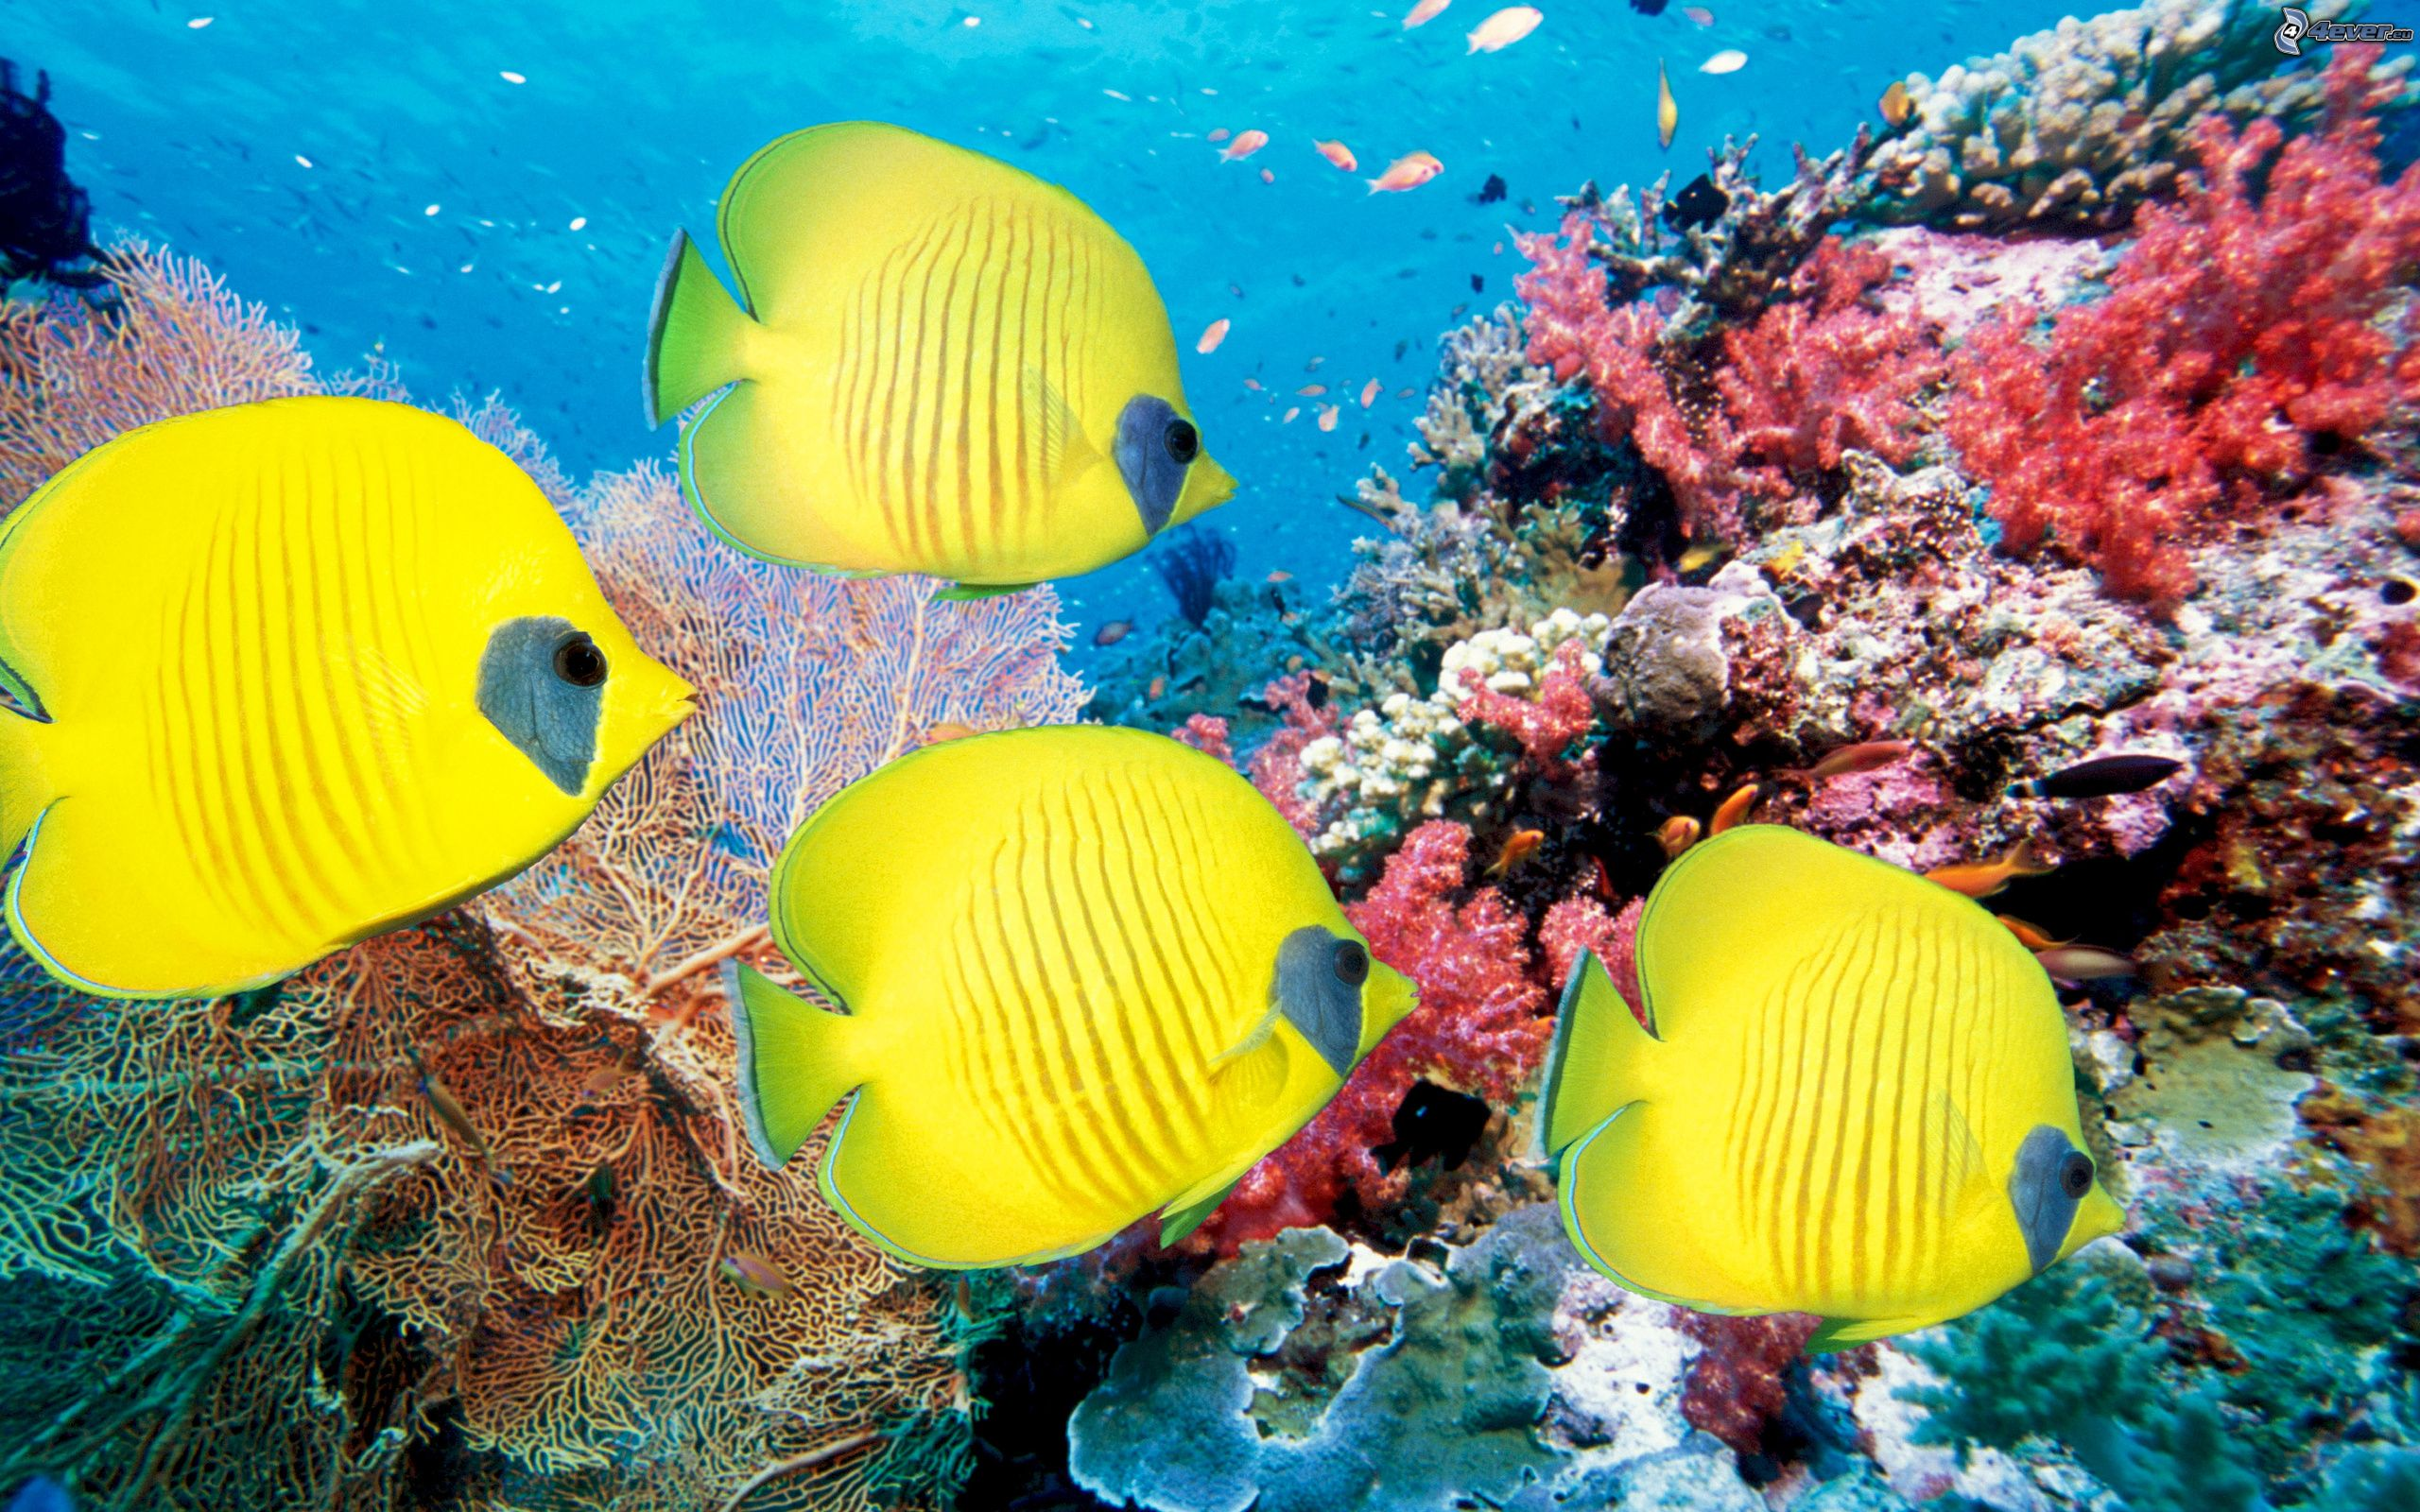 Coral reef fish - photo#43